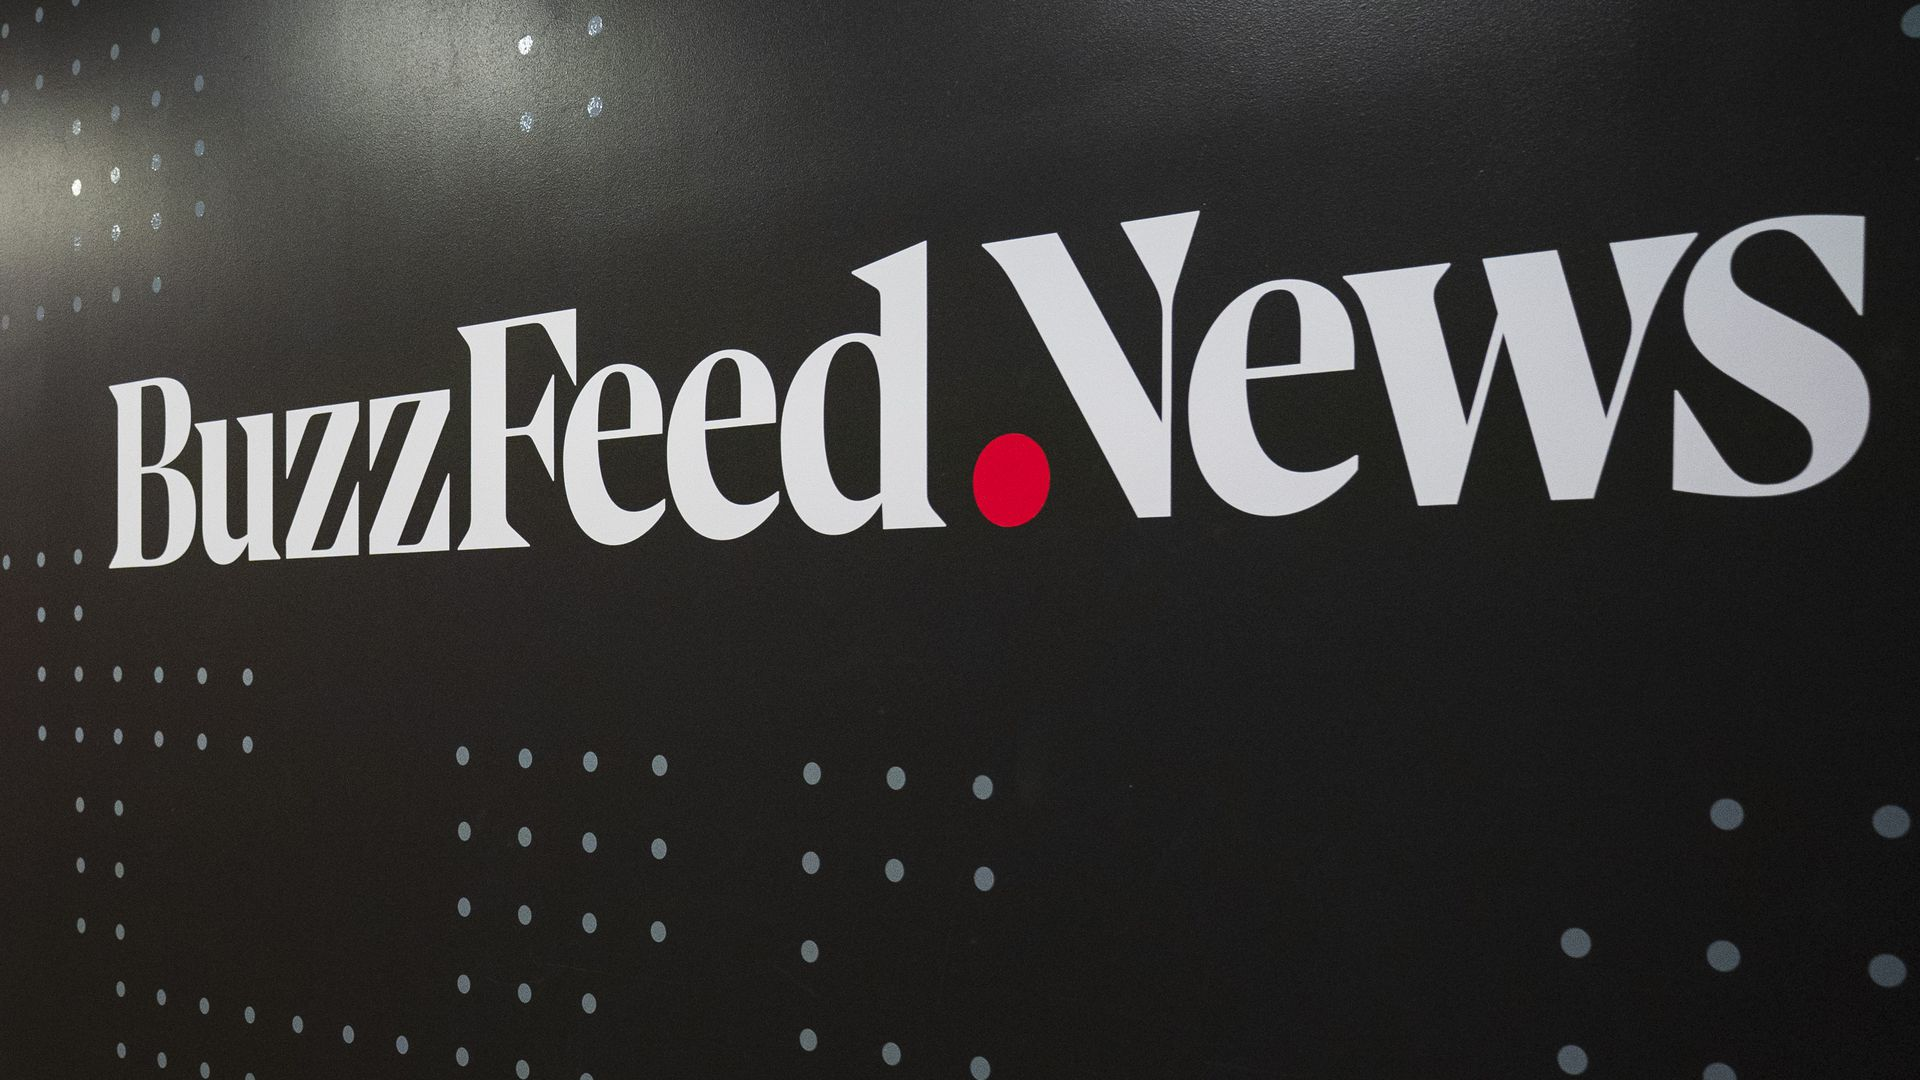 Wall painted with BuzzFeed News logo